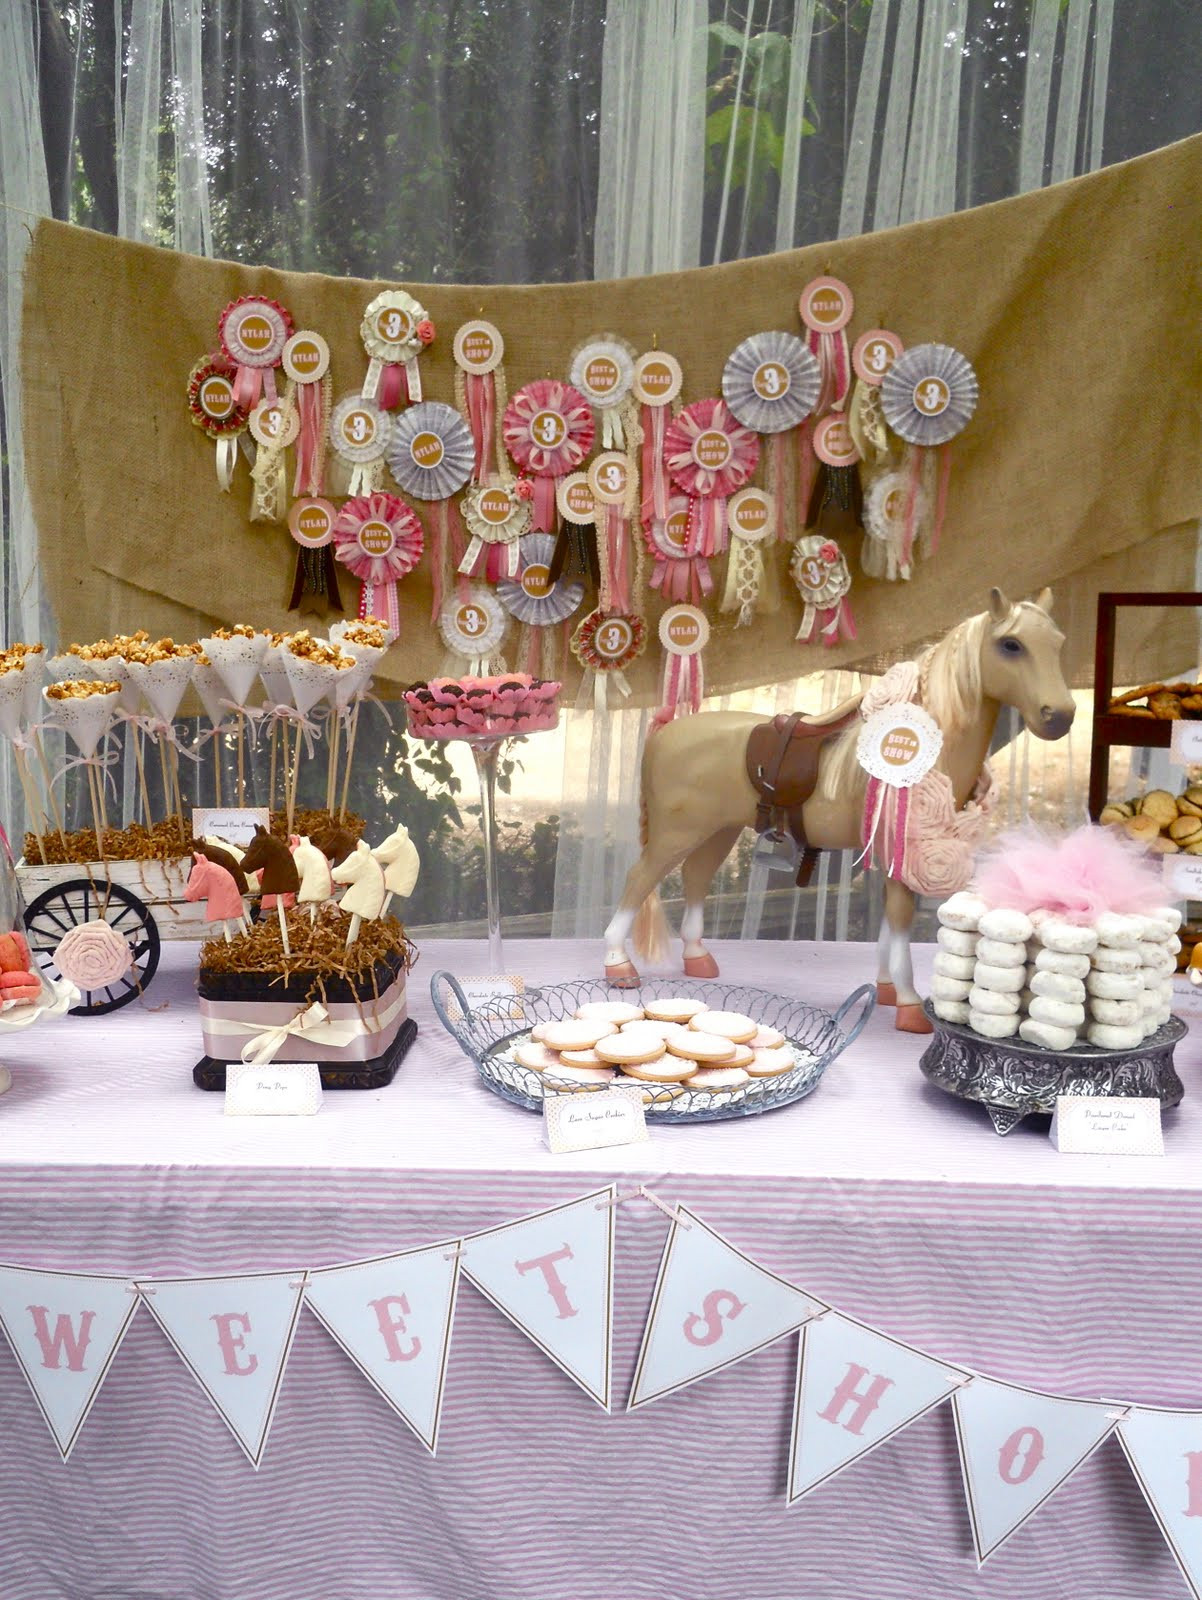 Best ideas about Ponies Birthday Party . Save or Pin Oh Sugar Events Vintage Pony Party Now.